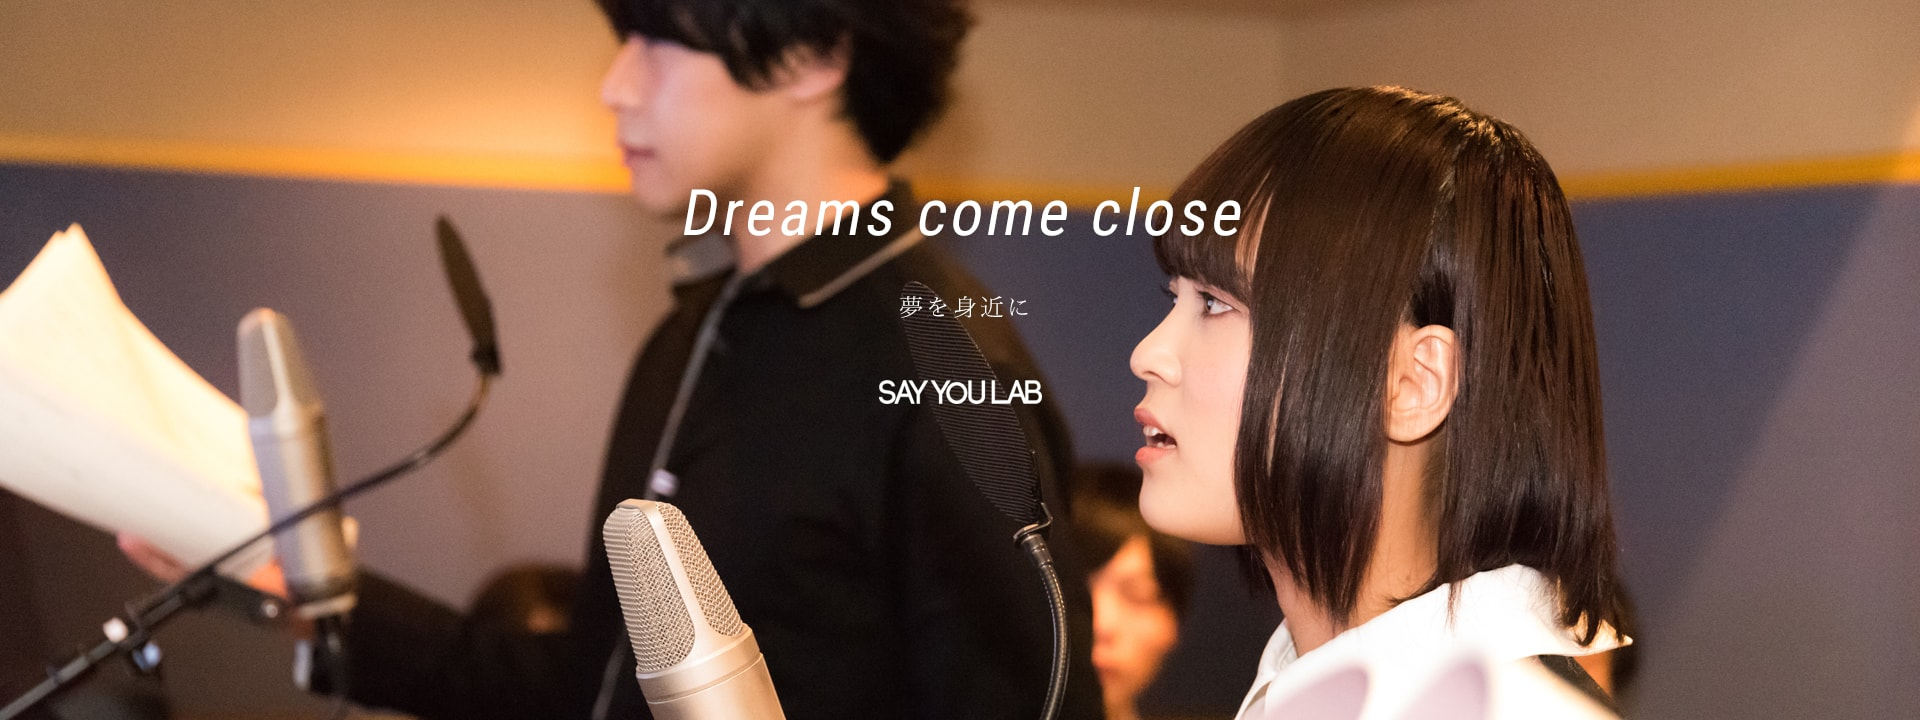 Dream Come Close 夢を身近に SAY YOU LAB